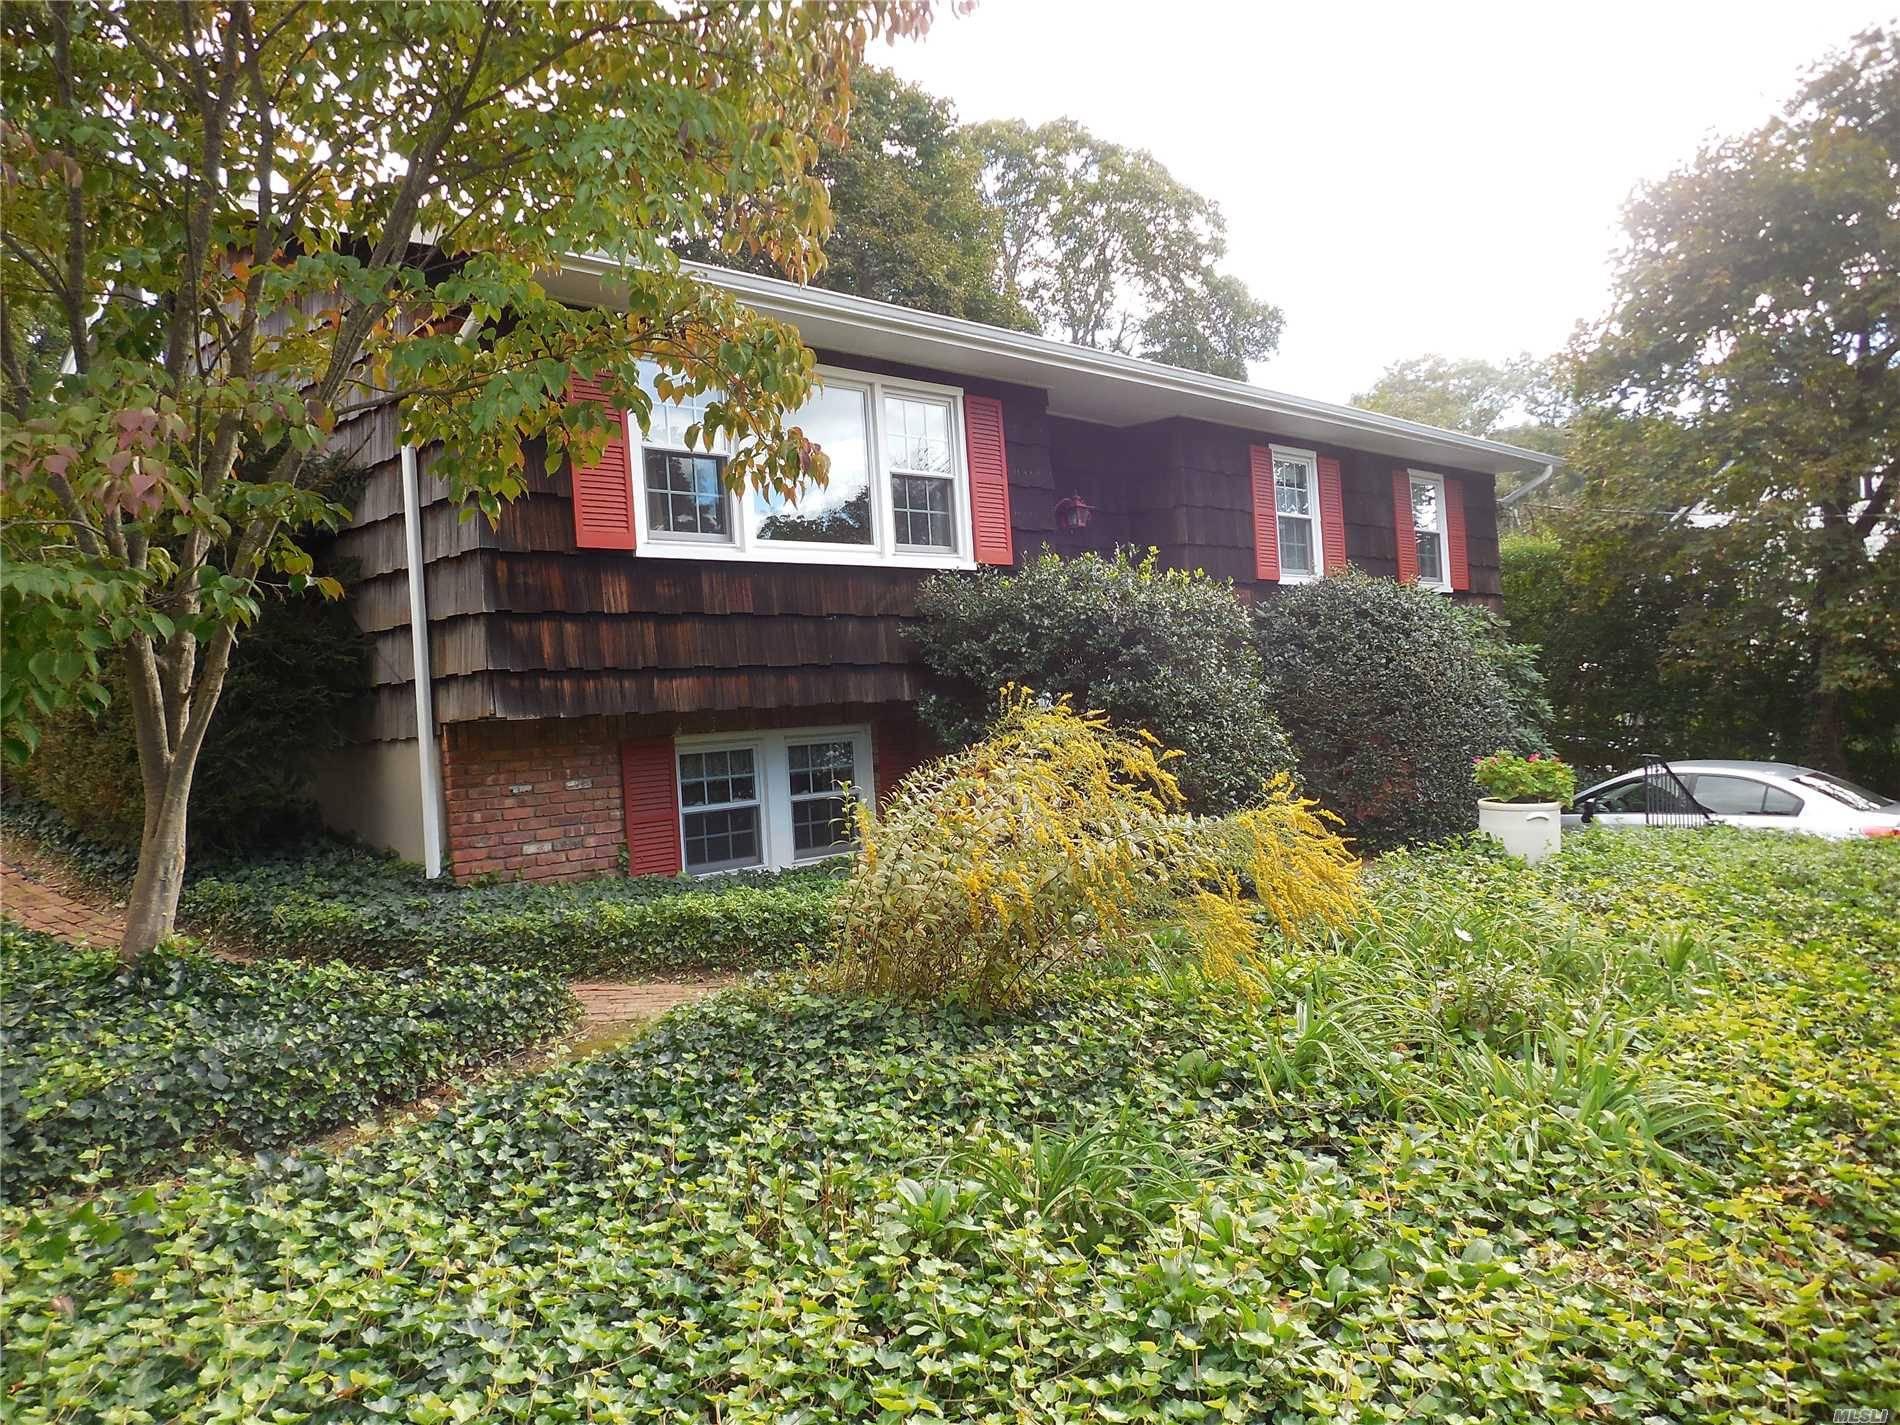 On a quiet street in the heart of Northport Village - this new to the market home boasts winter water views- a 14.5 X 20 newly added Great Room - with a wood burning fireplace- a soaring 16 foot peaked ceiling - and walls of glass opening to a covered deck and expansive brick patio overlooking a very private back yard!! Seconds from Main St and all that it has to offer- restaurants - village dock - gazebo - Engeman Theater and shops.!!Gas on the Street - A MUST SEE HOME !!